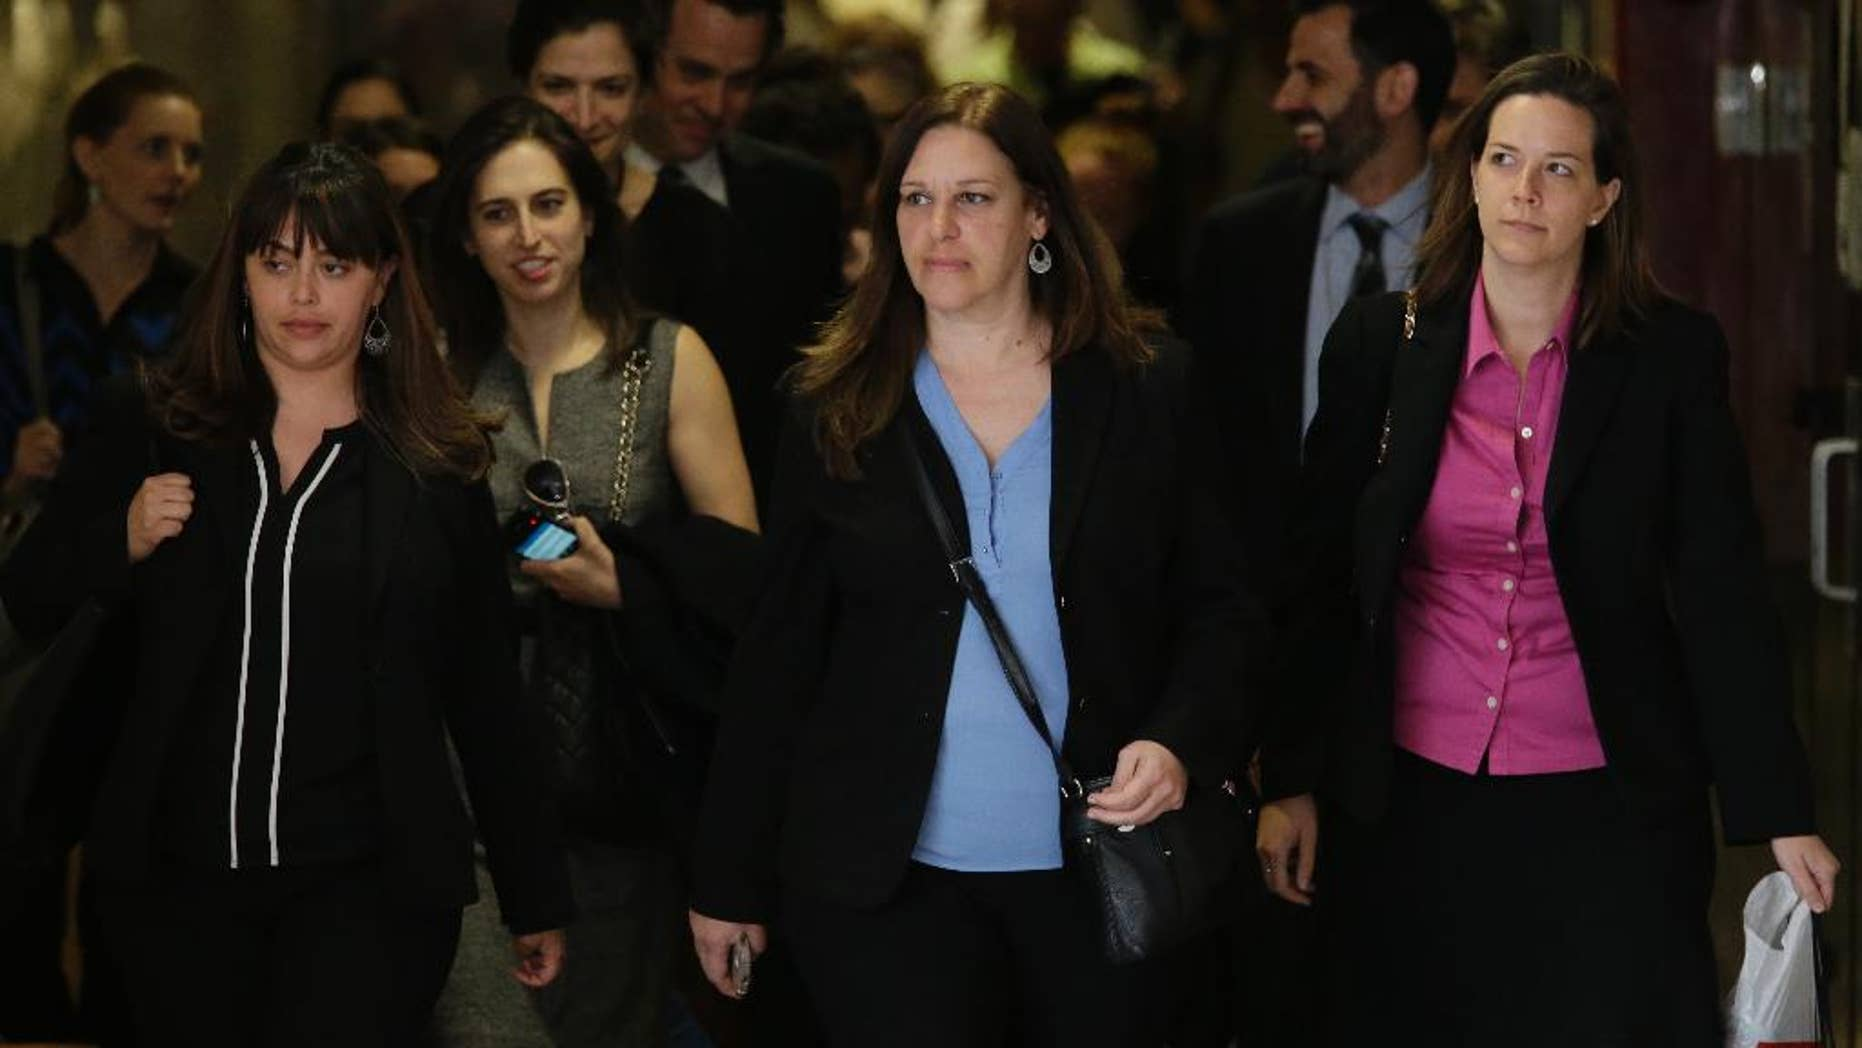 Assistant District Attorney Joan Illuzzi-Orbon, center, leaves at the end of the day in the trial of Pedro Hernandez in New York, Tuesday, May 5, 2015, in New York. Jurors deliberating in the murder trial of Hernandez, a man accused of kidnapping and killing 6-year-old Etan Patz in 1979, said they're deadlocked — for a second time. But a judge is telling them to keep trying for a verdict. (AP Photo/Mary Altaffer)